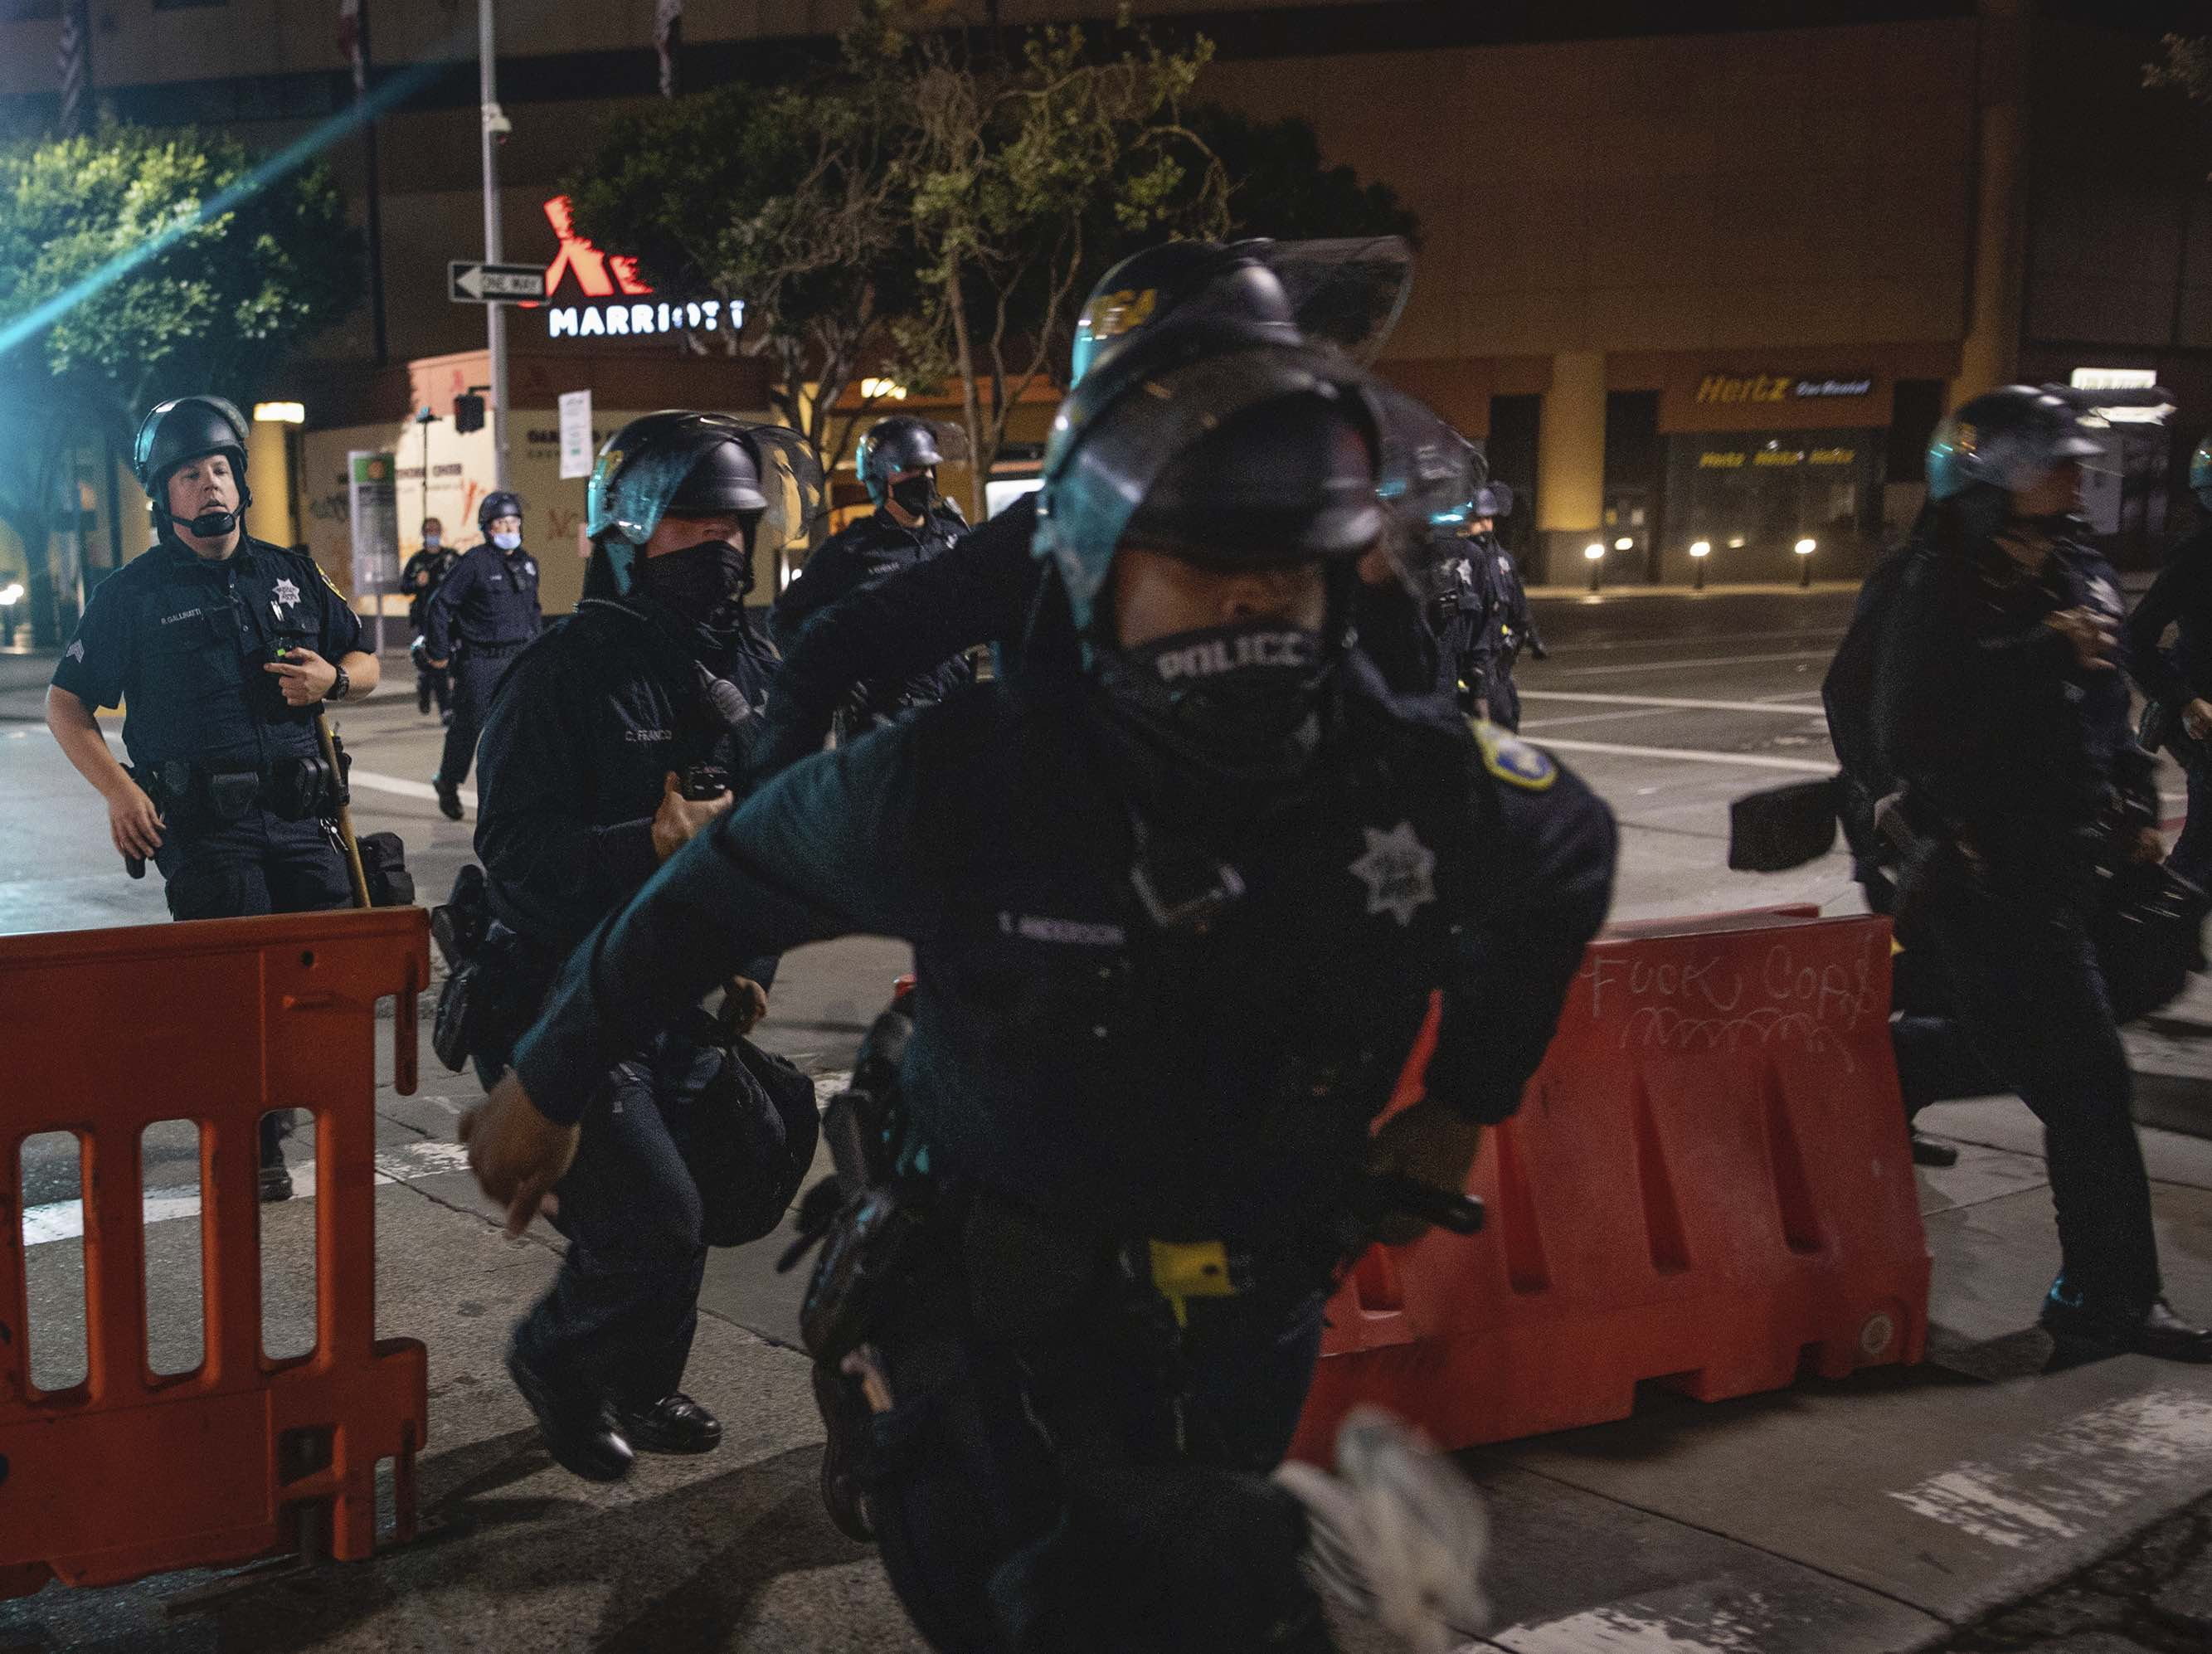 Oakland police (Christian Monterrosa / Associated Press)